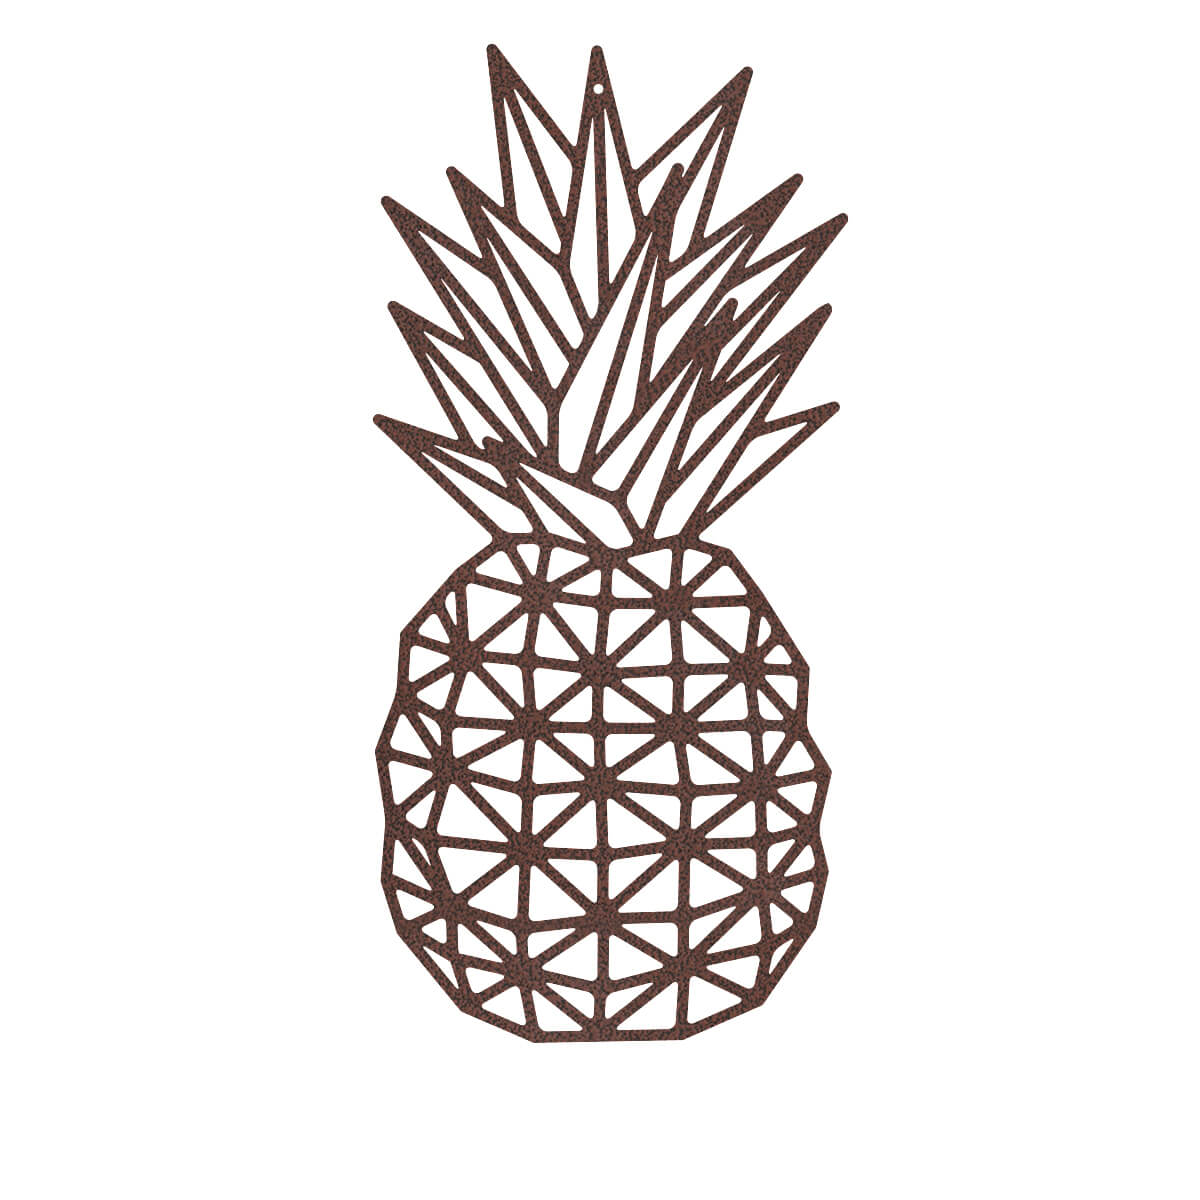 "Pineapple Wall Art 10""x18"" / Penny Vein - RealSteel Center"